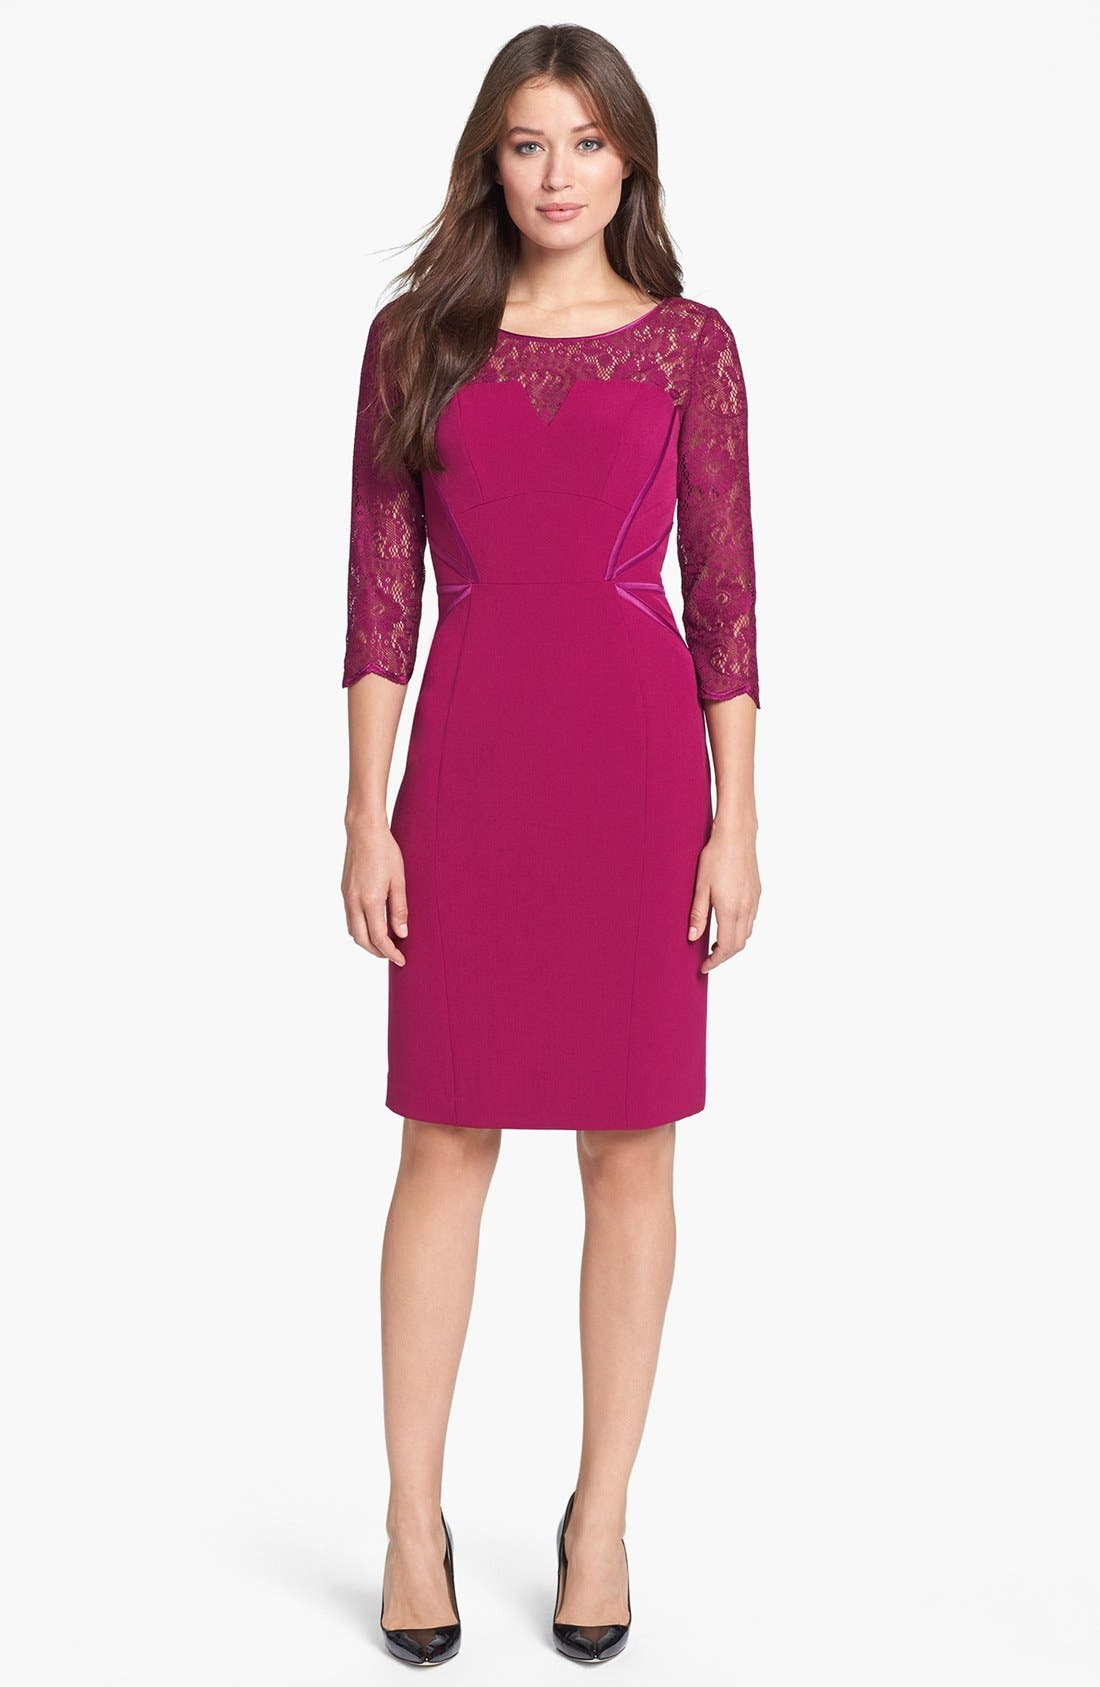 Alternate Image 1 Selected - Adrianna Papell Lace Yoke Crepe Sheath Dress